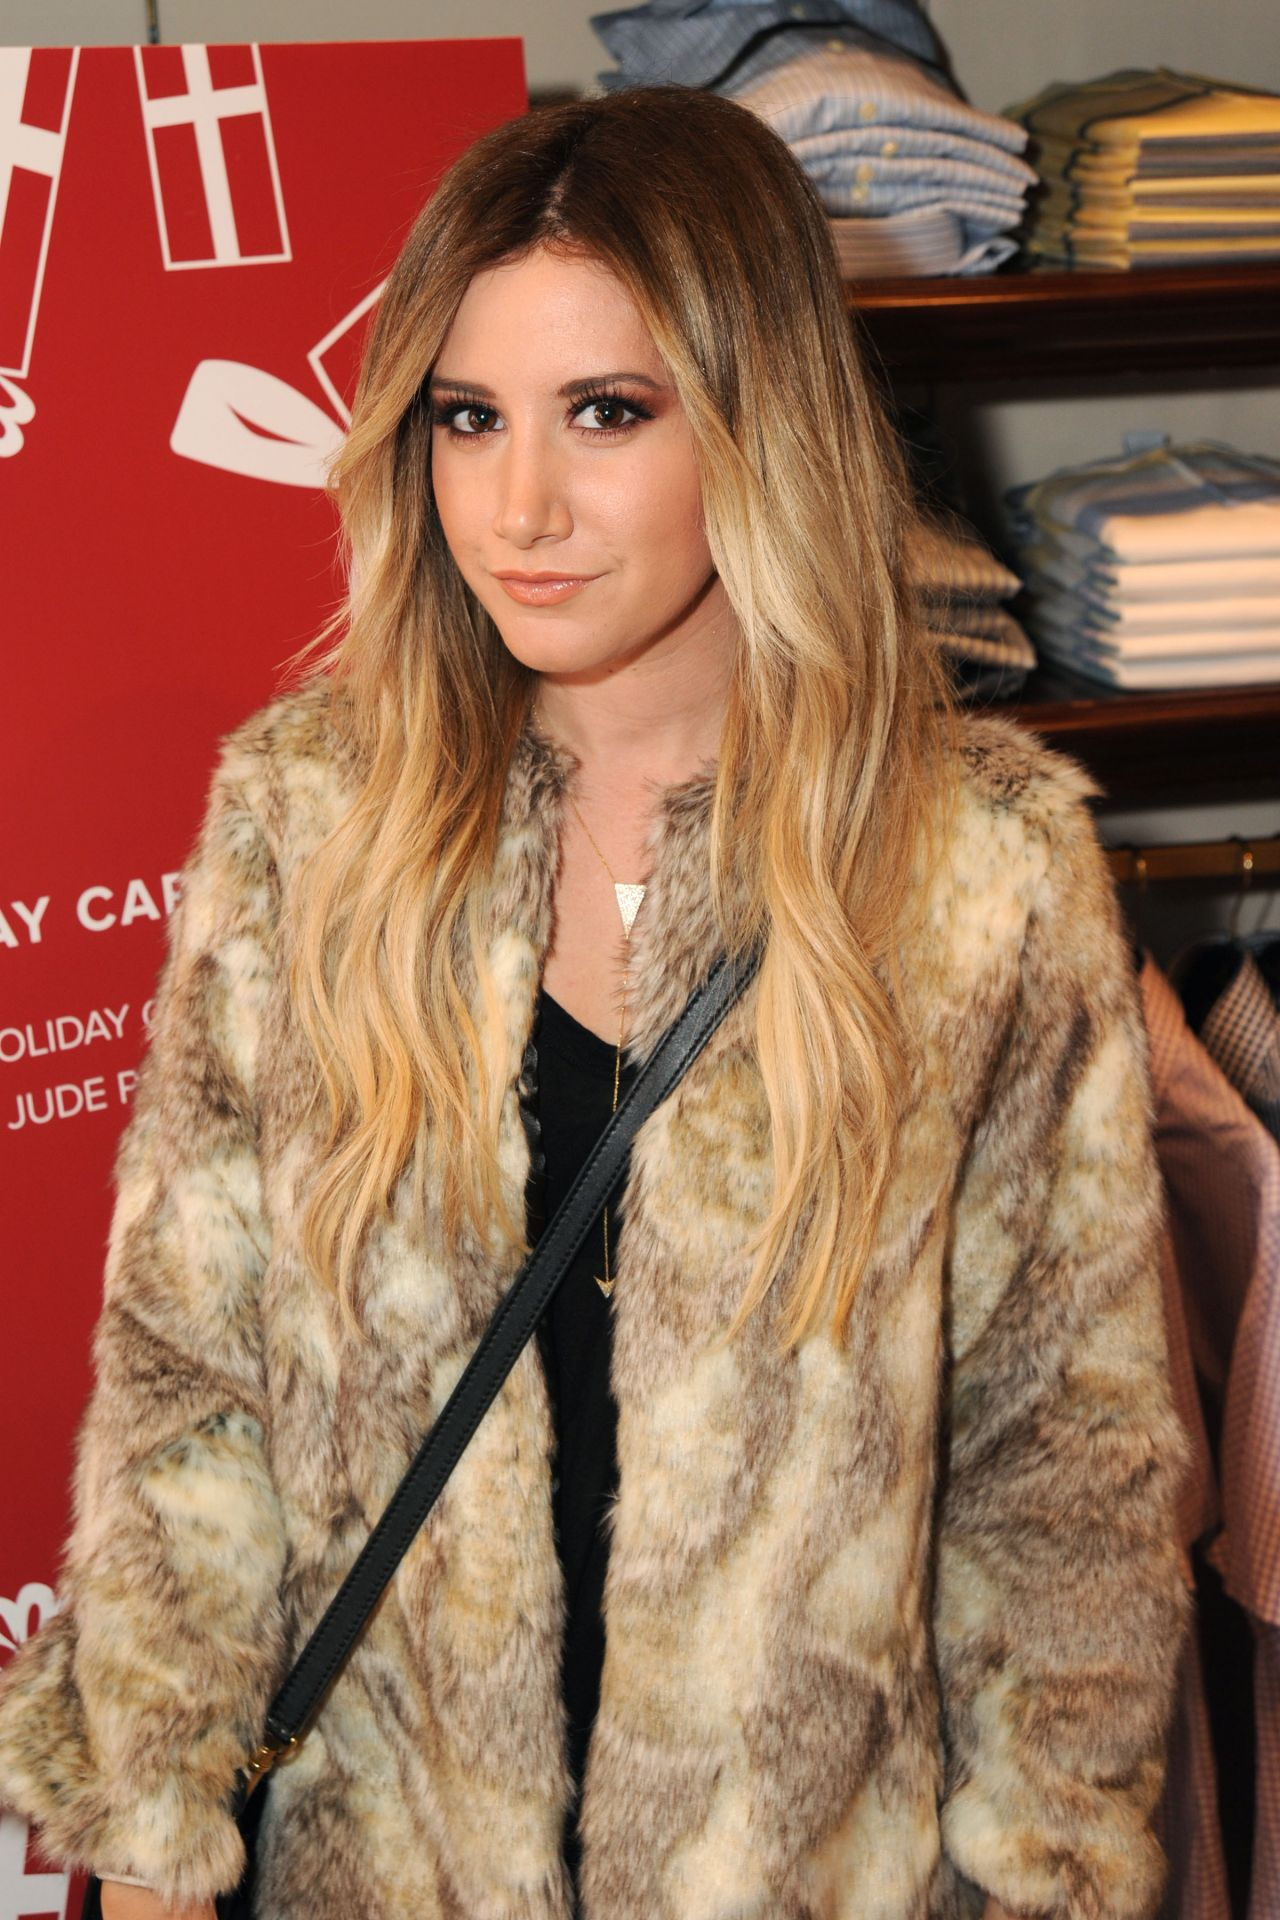 Ashley Tisdale - Brooks Brothers Celebrates the Holidays, St. Jude Research Hospital, Dec. 2014